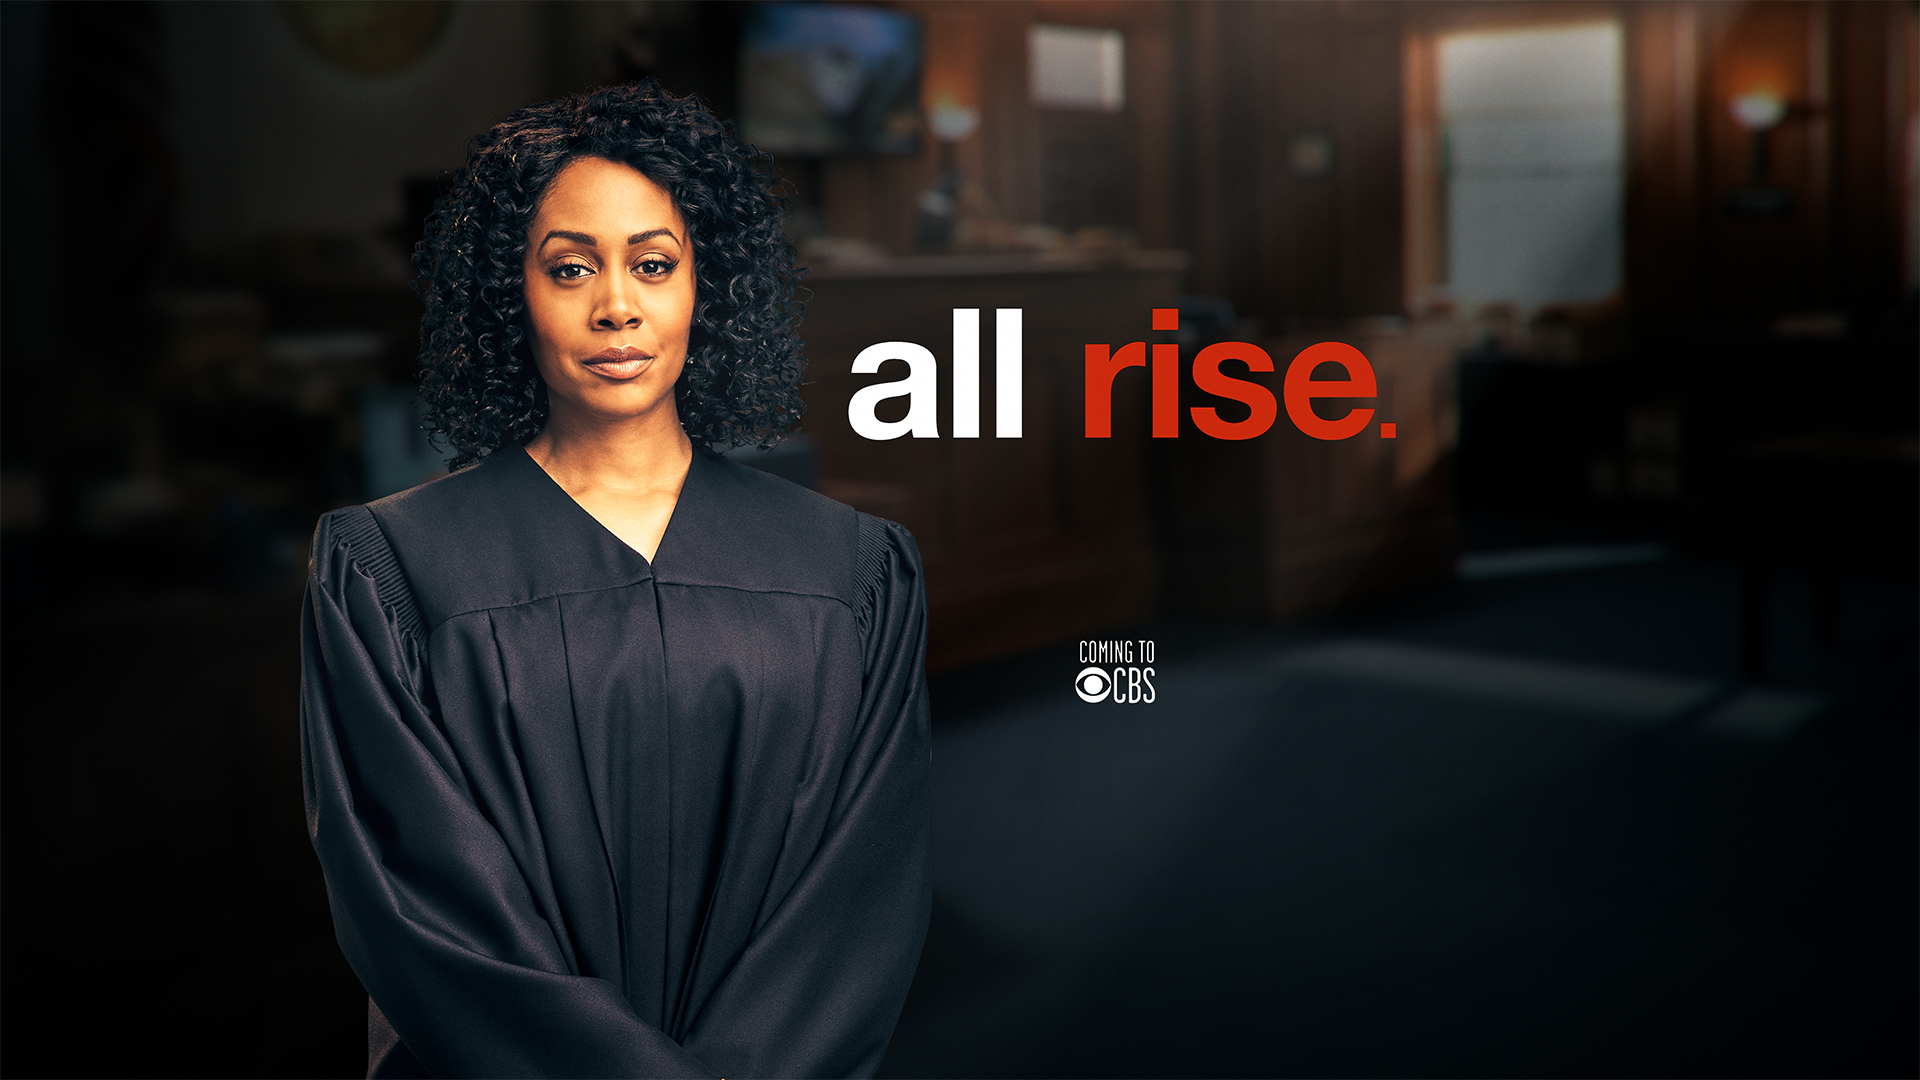 All Rise Season 2 Episode 6: Release Date and More!